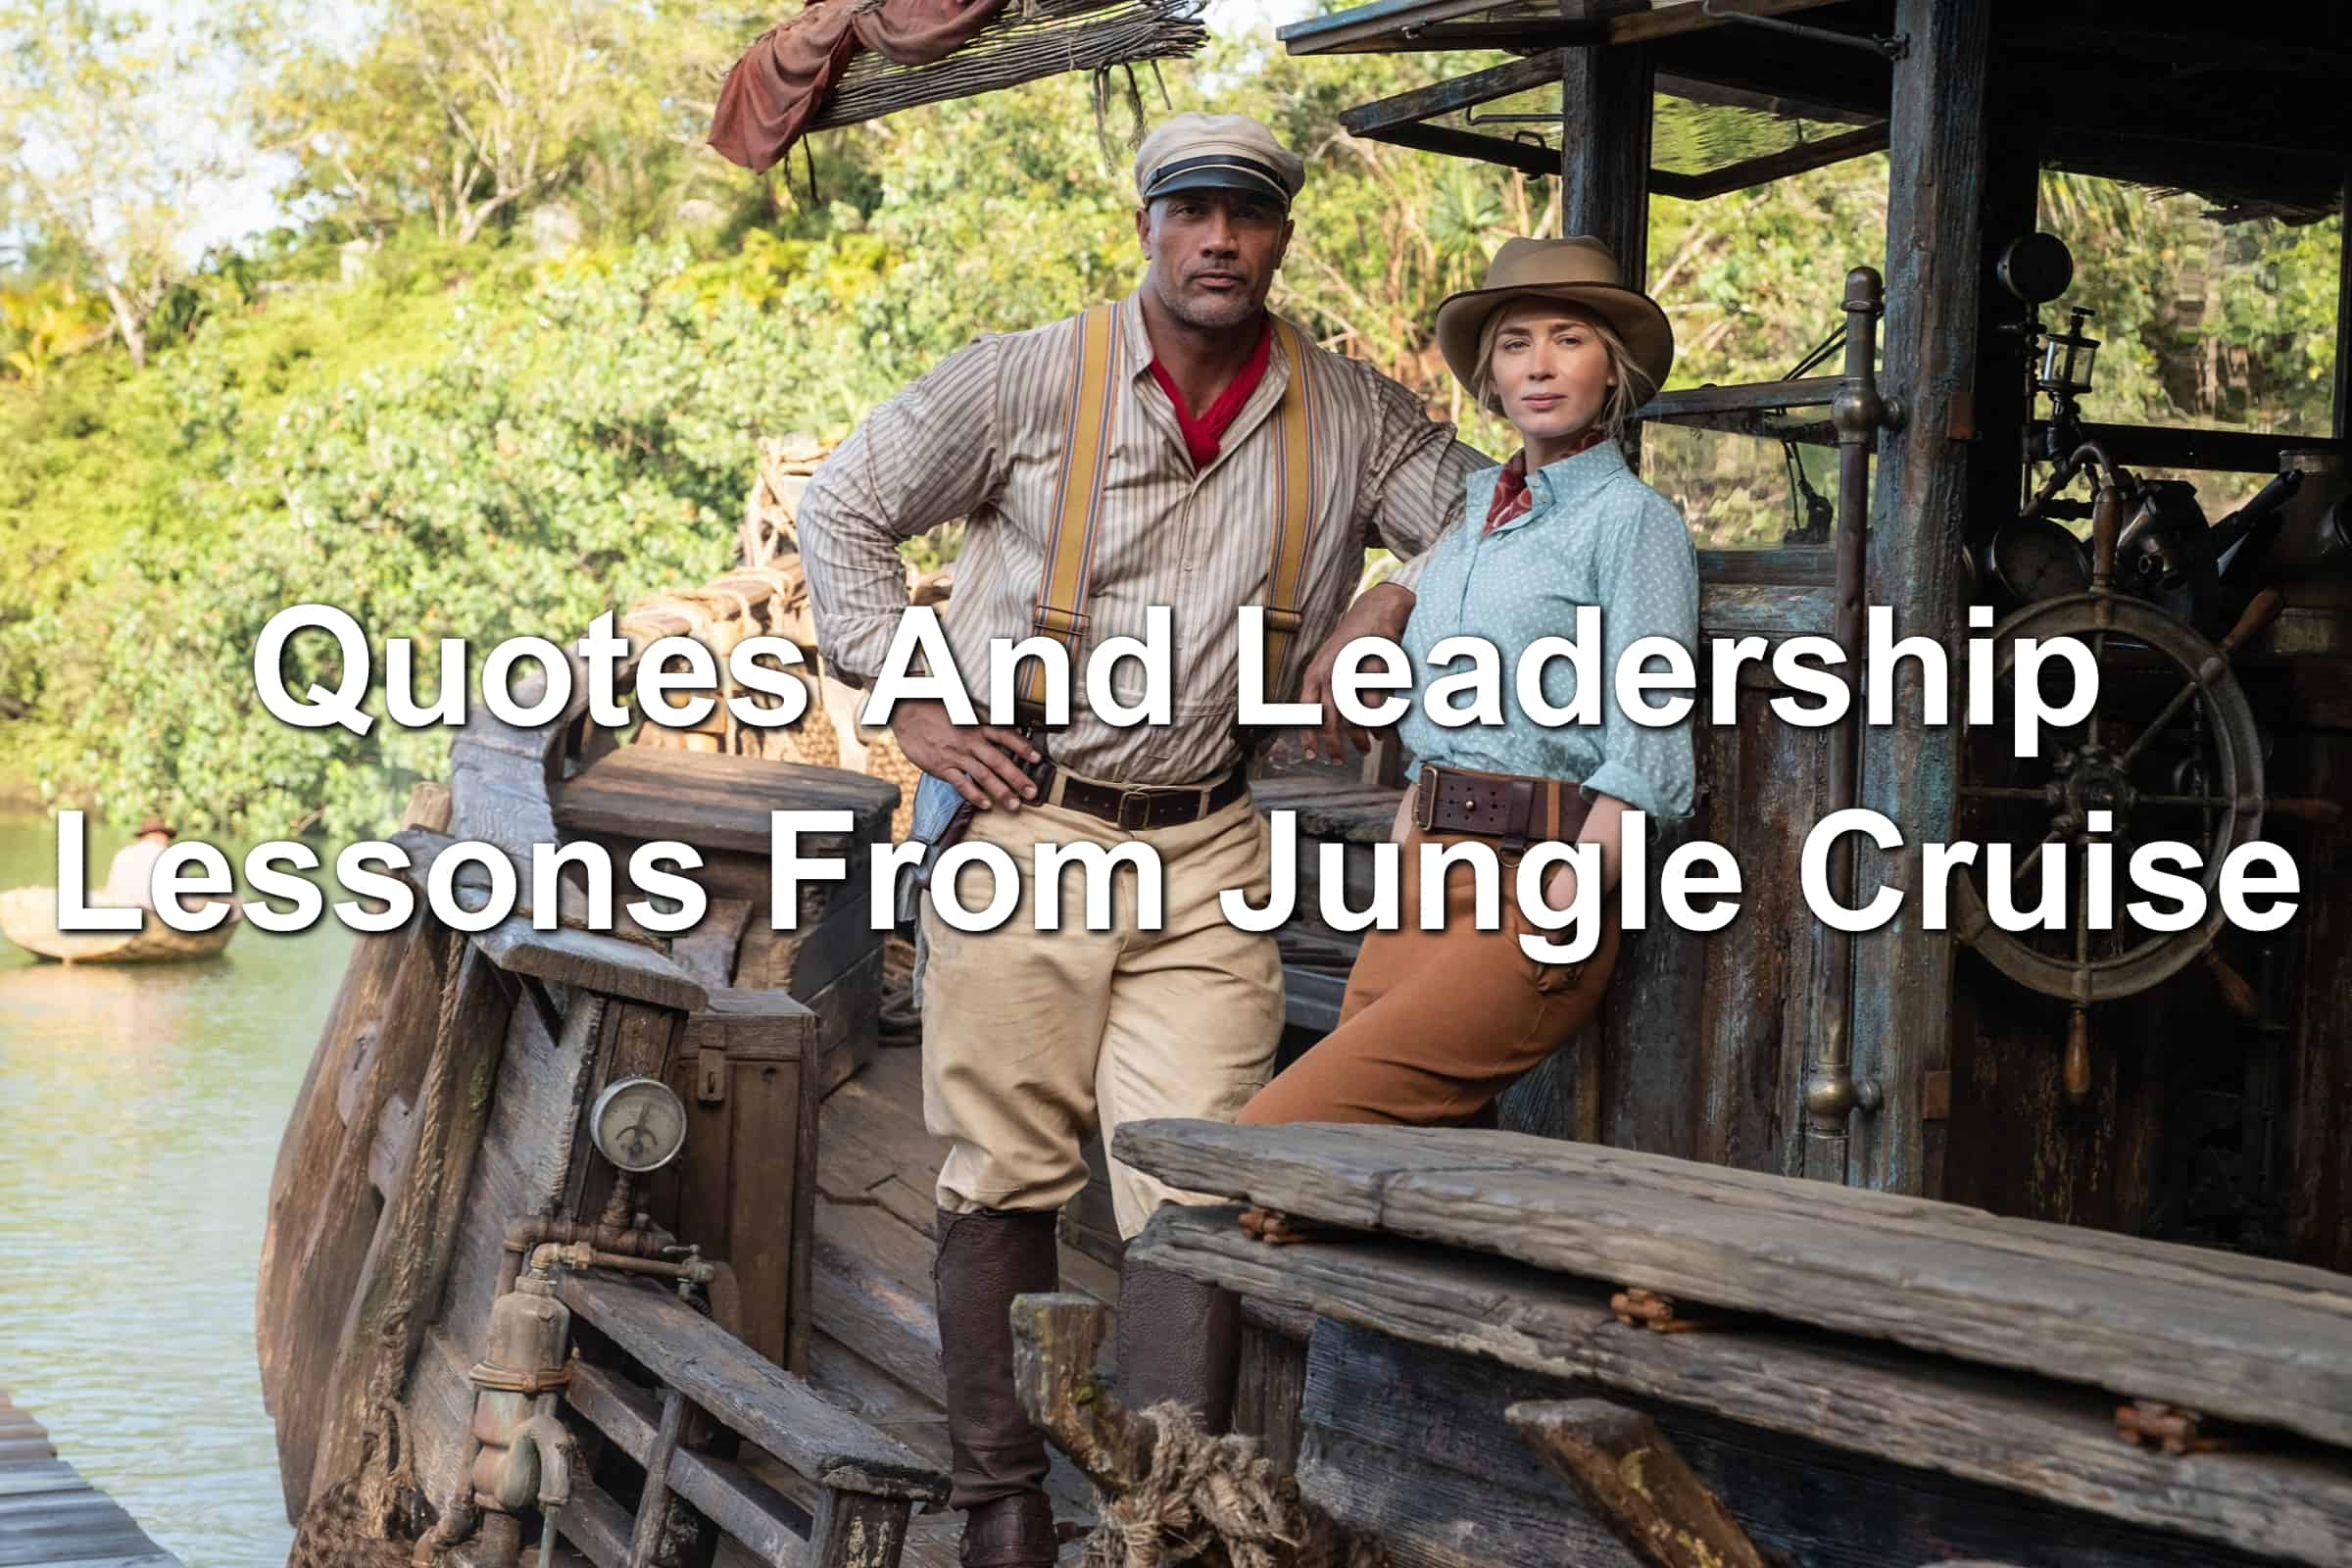 The Rock and Emily Blunt in Jungle Cruise by Disney